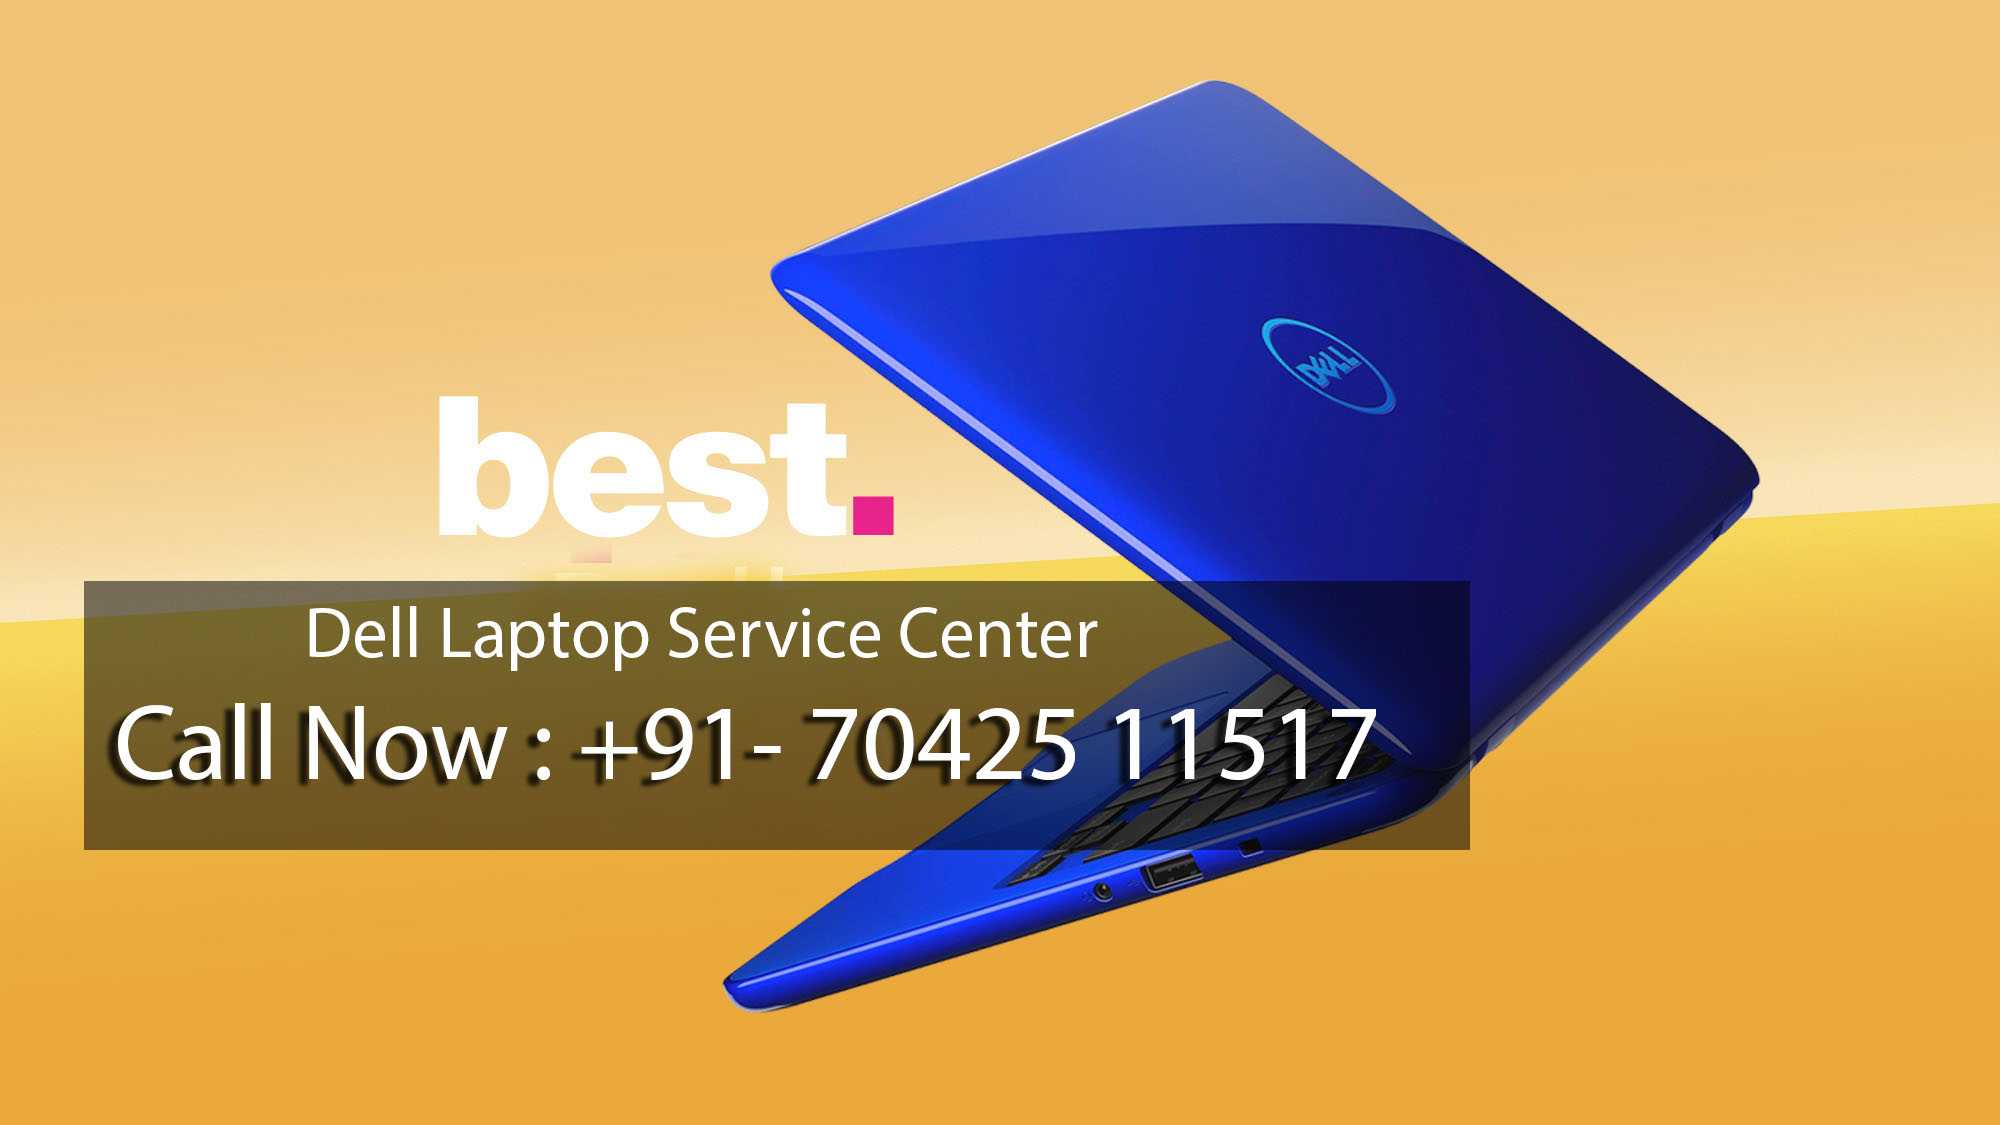 Dell Service Center in Anand Vihar